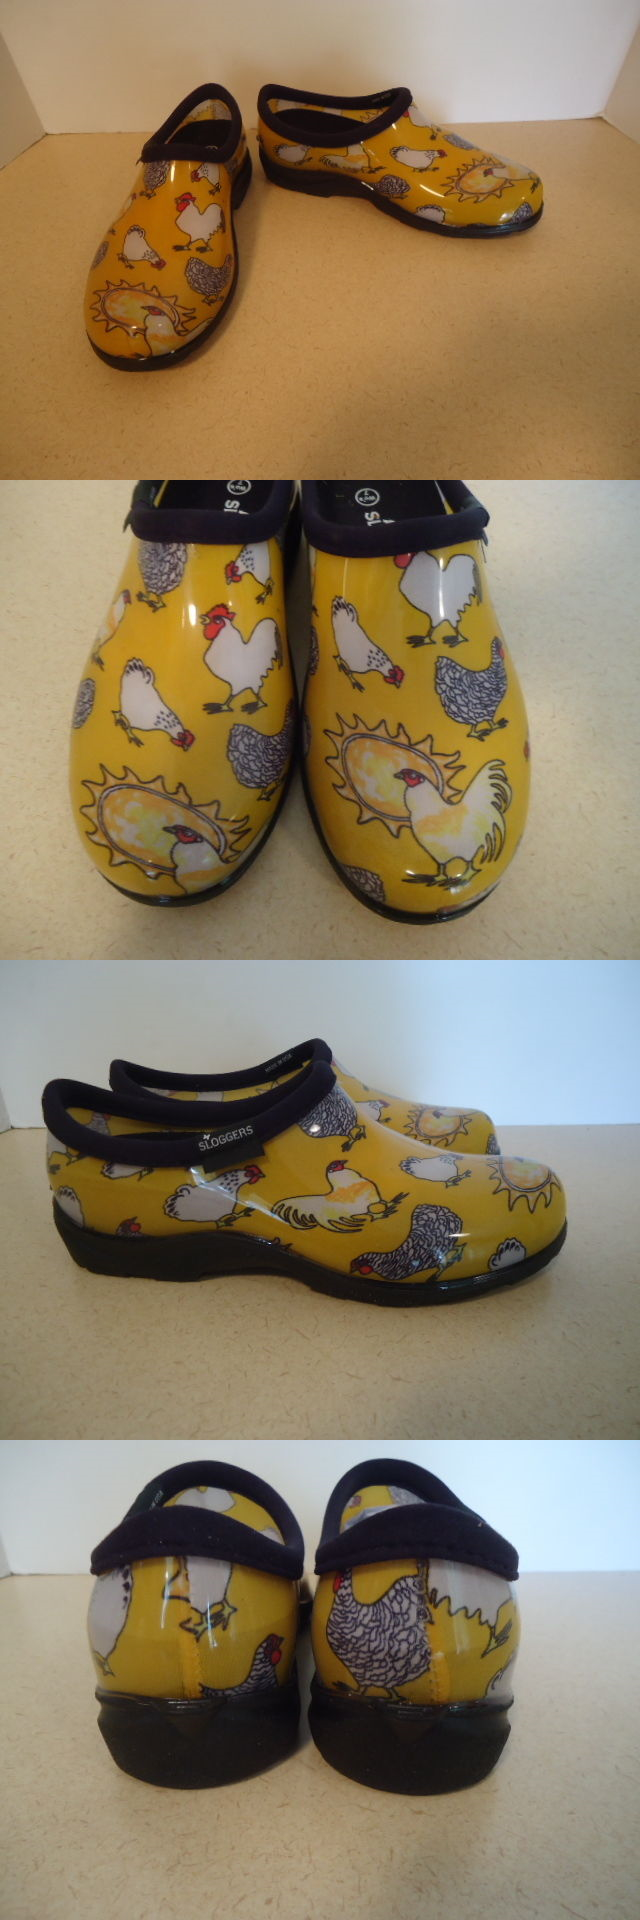 Gardening Boots and Shoes 139861: Sloggers Sz 7 Yellow Chicken Print ...